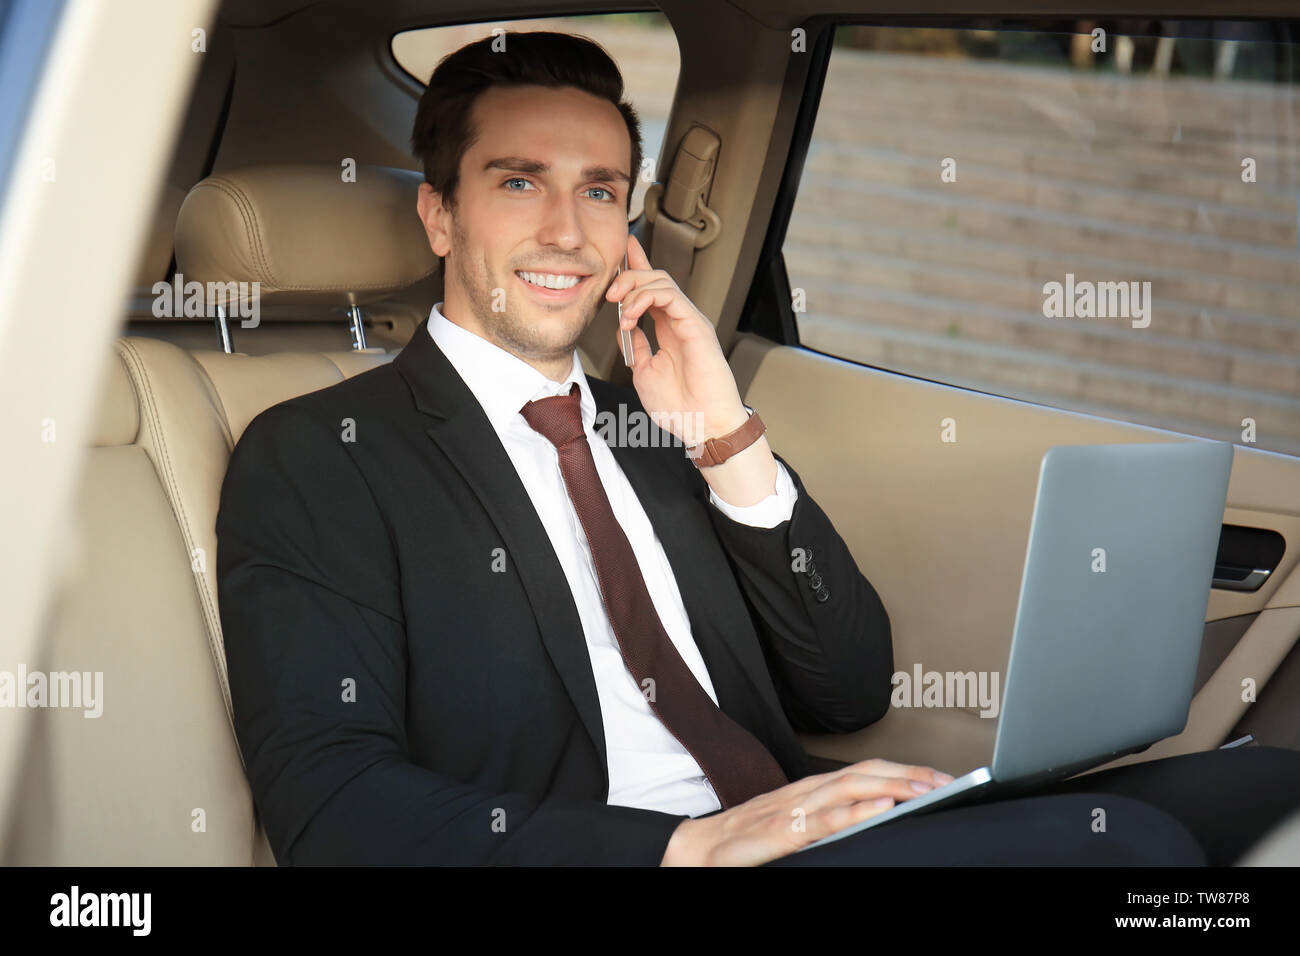 Man in formal wear with laptop talking on phone in car - Stock Image